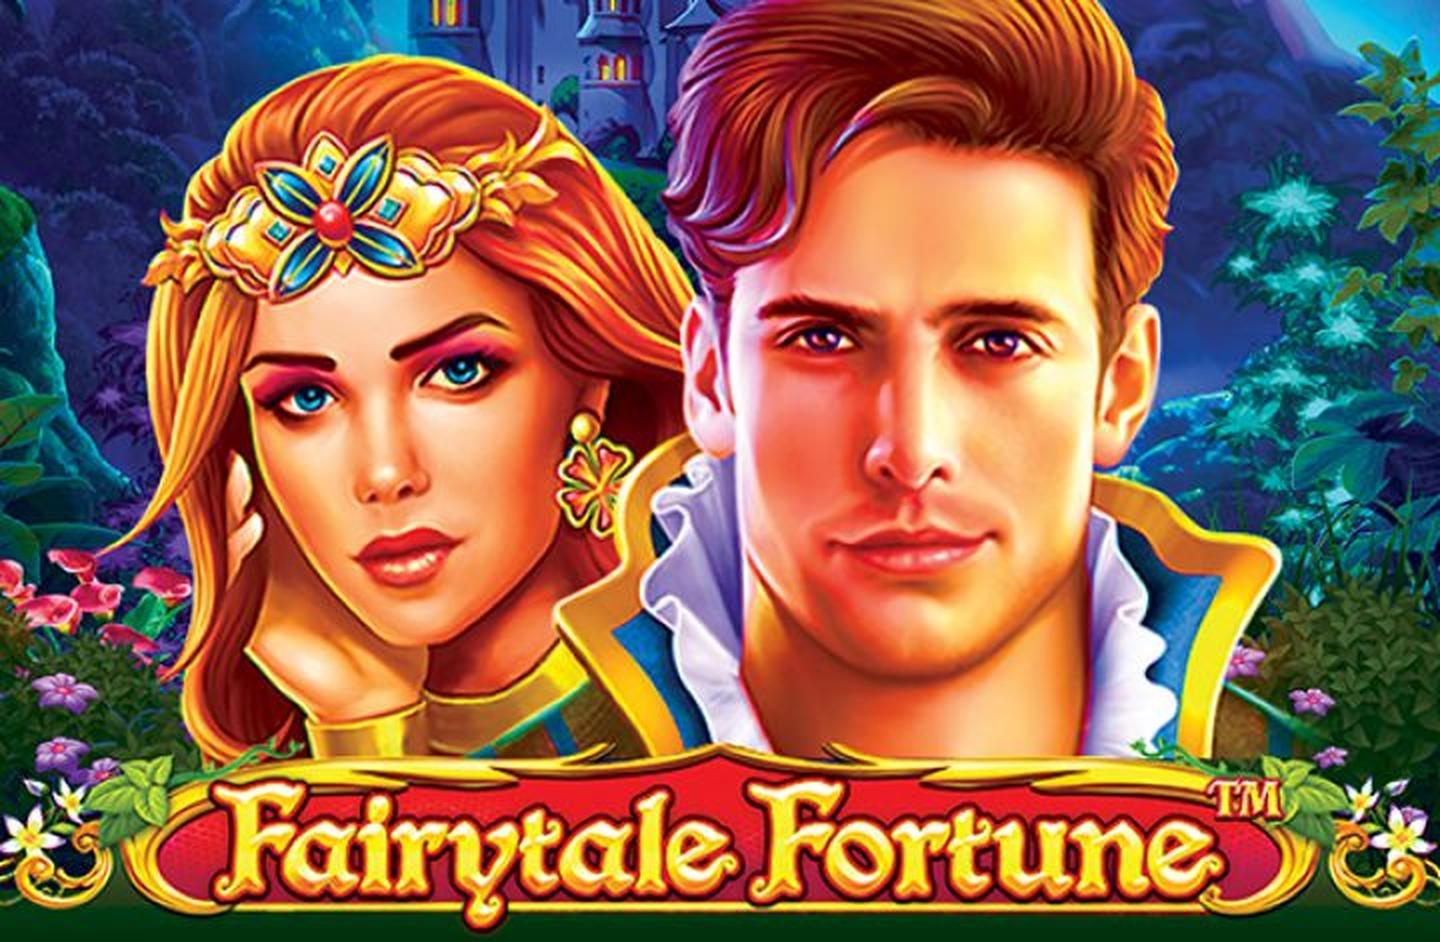 The Fairytale Fortune Online Slot Demo Game by Pragmatic Play